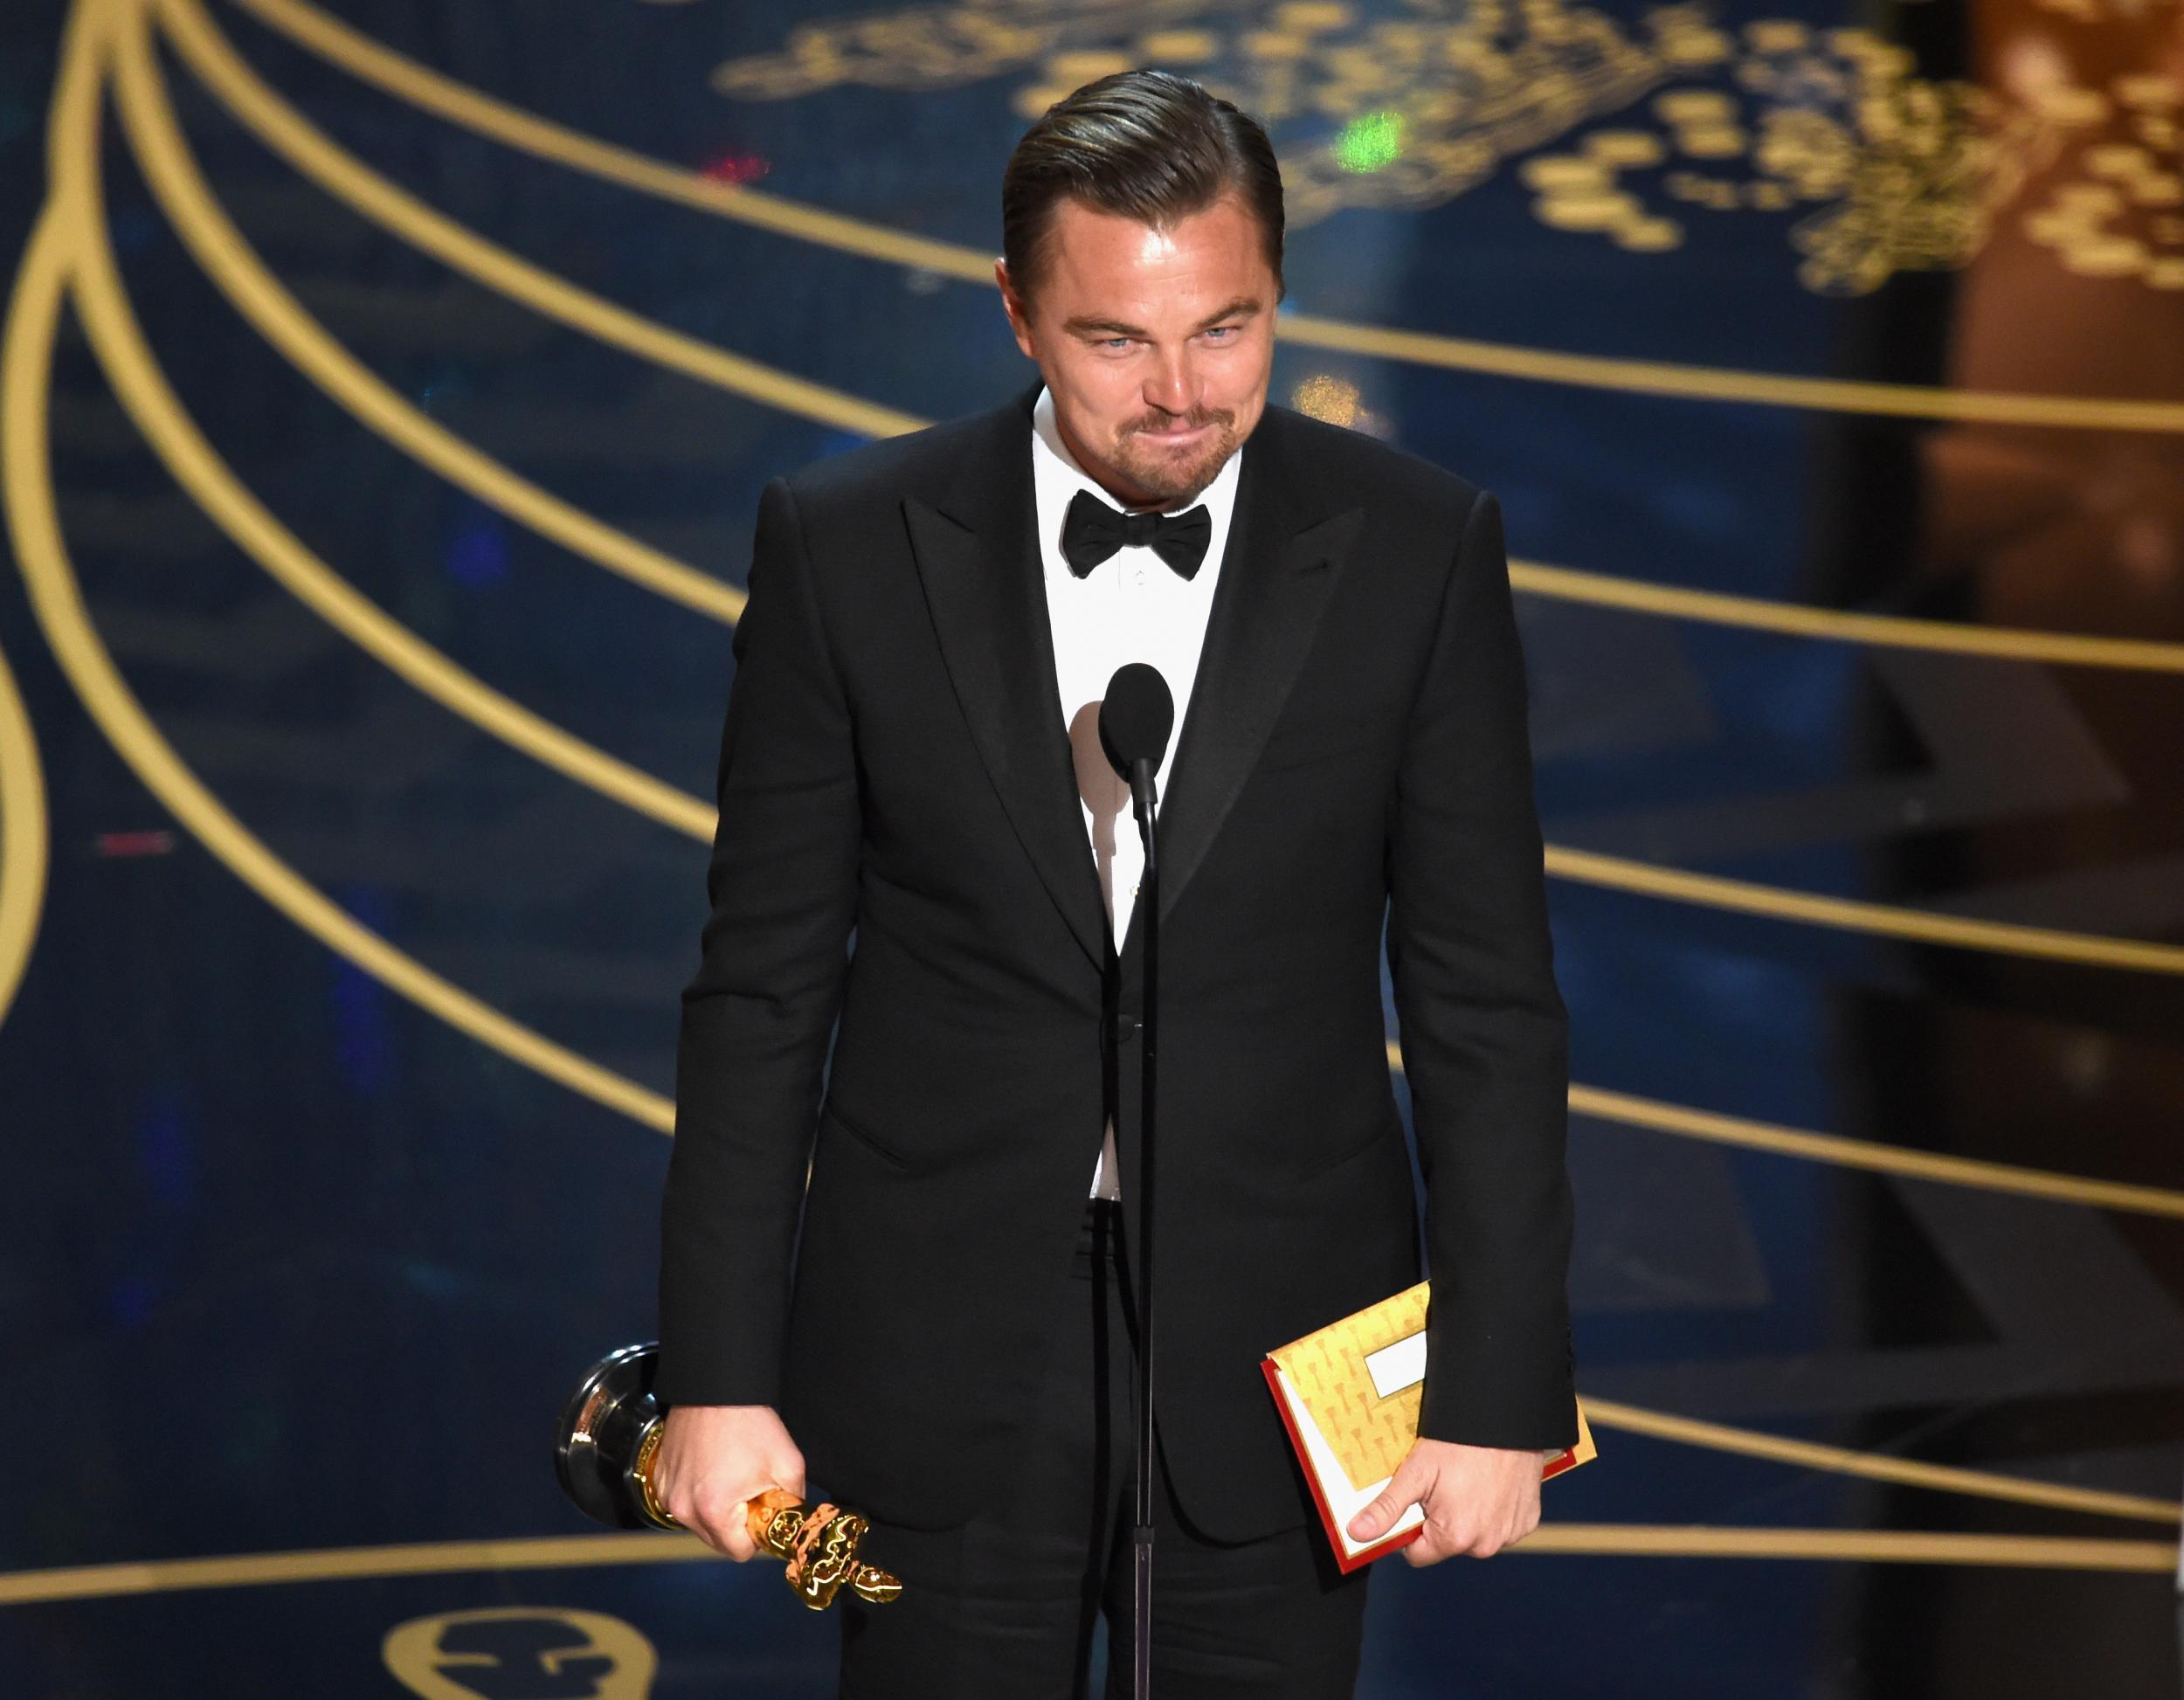 DiCaprio beat Depp due to the promiscuity of the latter 02.08.2011 77